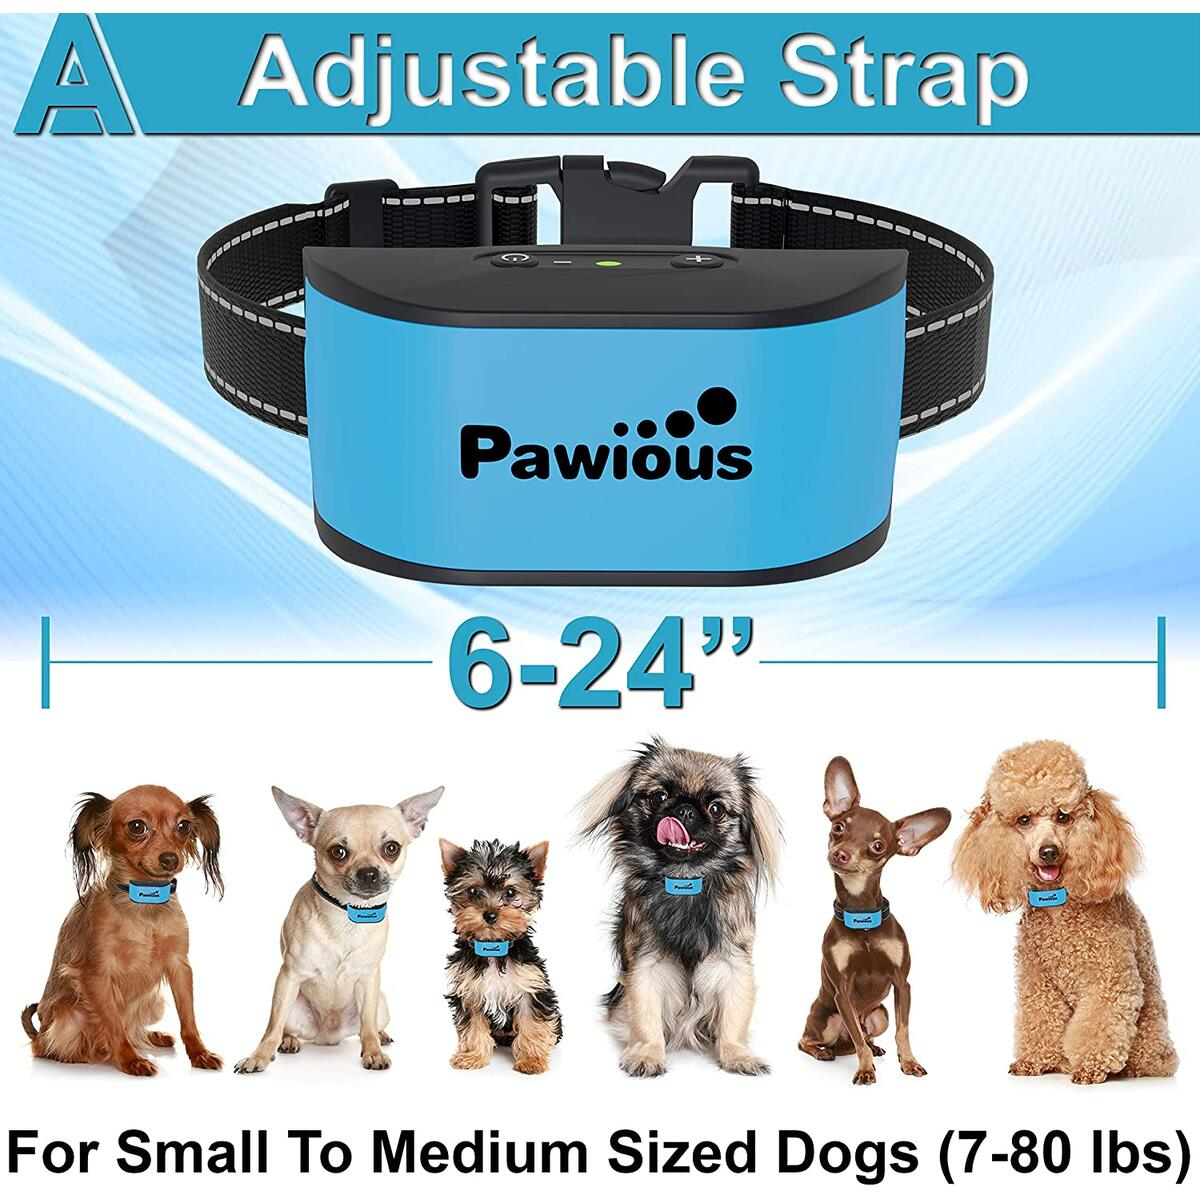 Pawious Bark Collar for Dogs - Humane No Shock, Rechargeable Anti Barking Collar, No Harmful Prongs, Sound and Vibration, 7 Sensitivity Levels - for Small and Medium Dogs